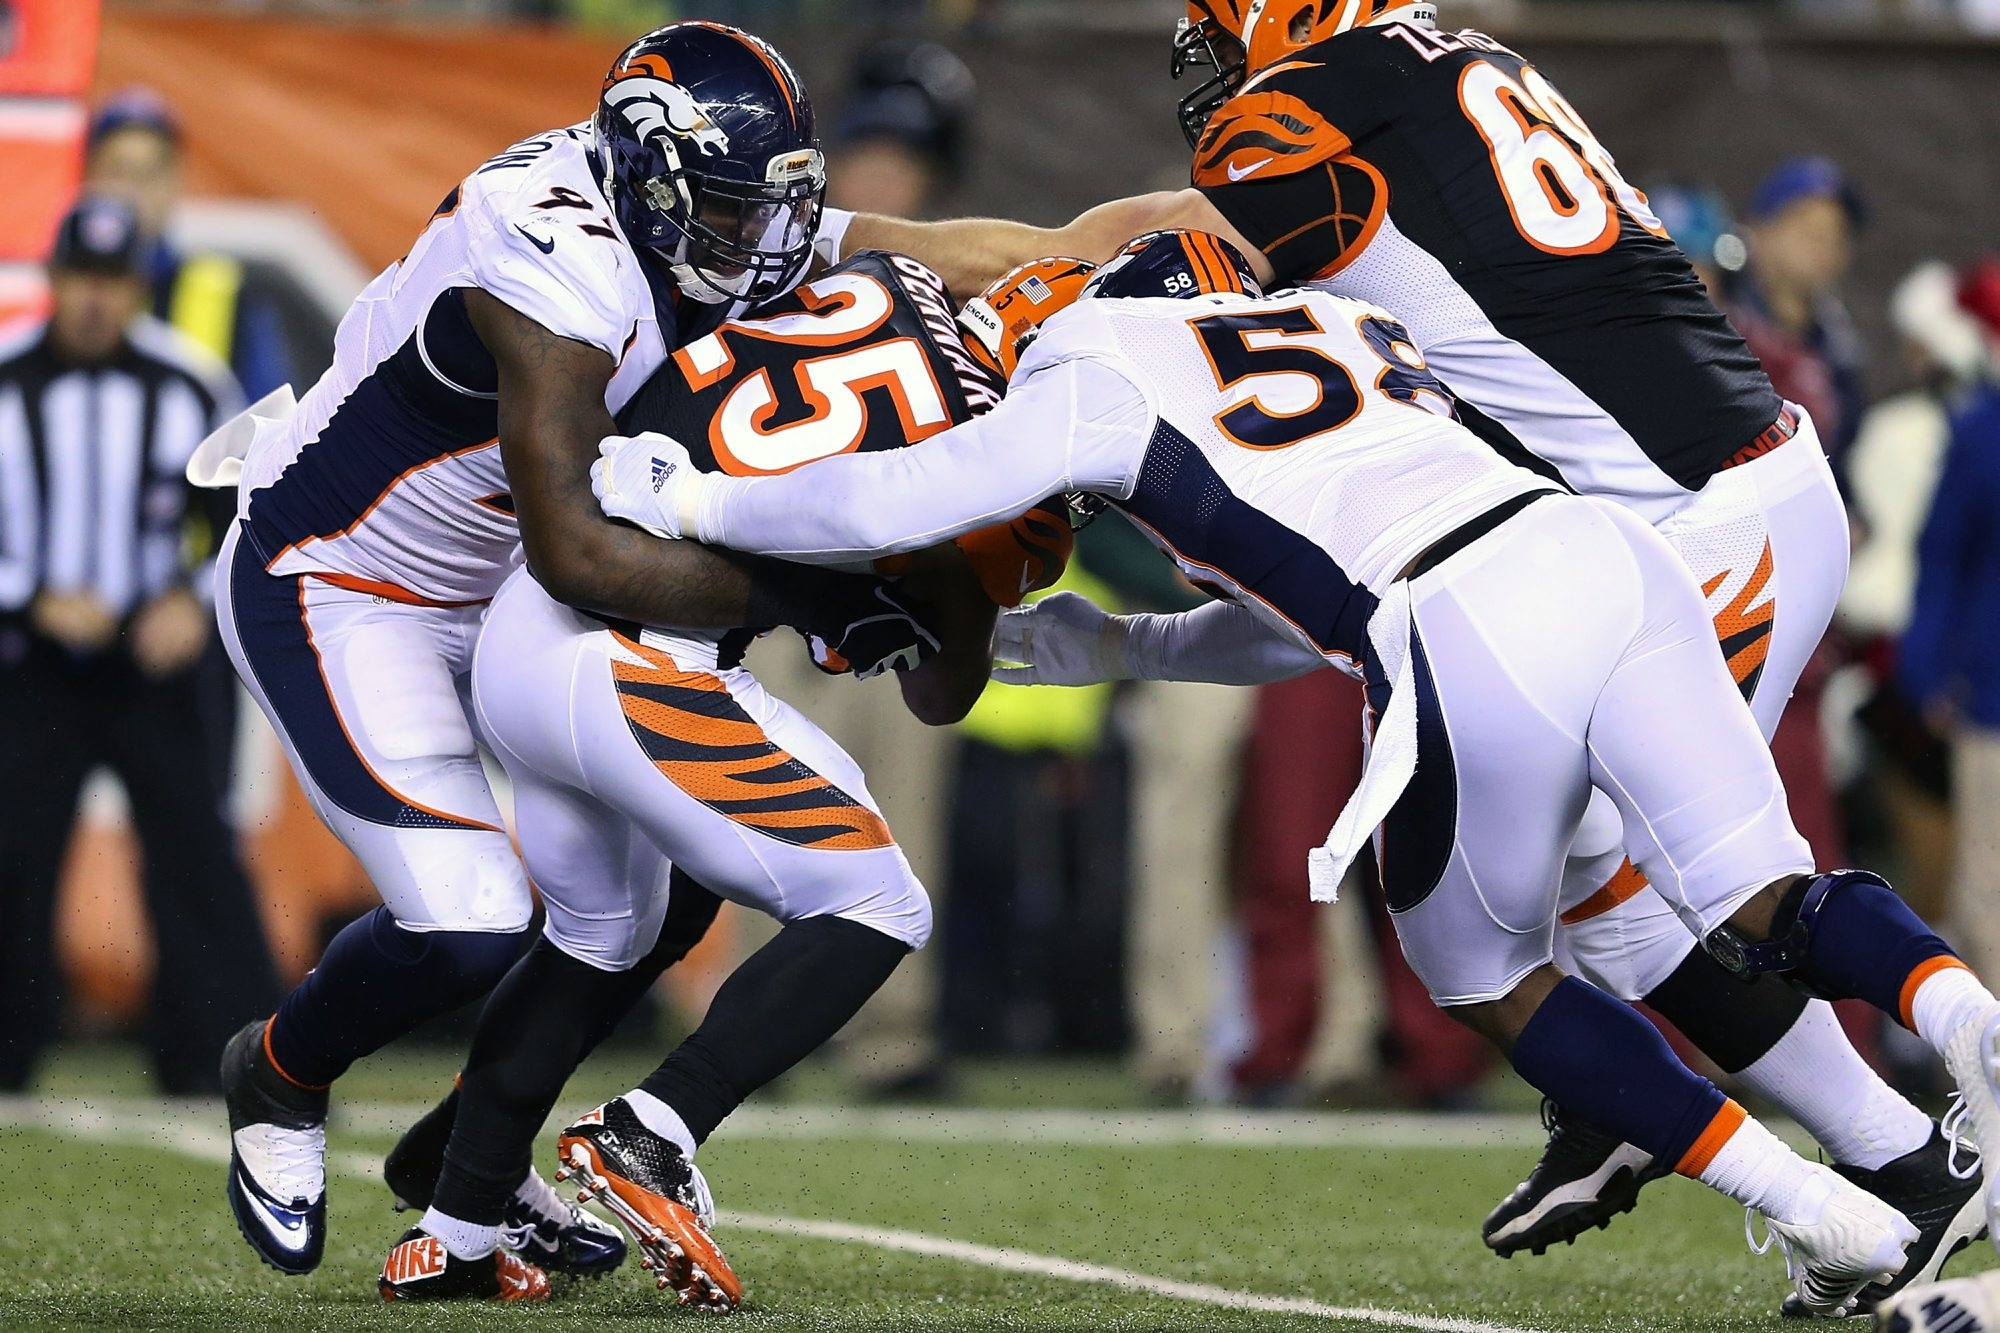 Denver defenders Malik Jackson and Von Miller team up to tackle Cincinnati's Giovani Bernard during last year's meeting between the teams at Paul Brown Stadium. The Broncos and Bengals meet again in Denver Monday night.